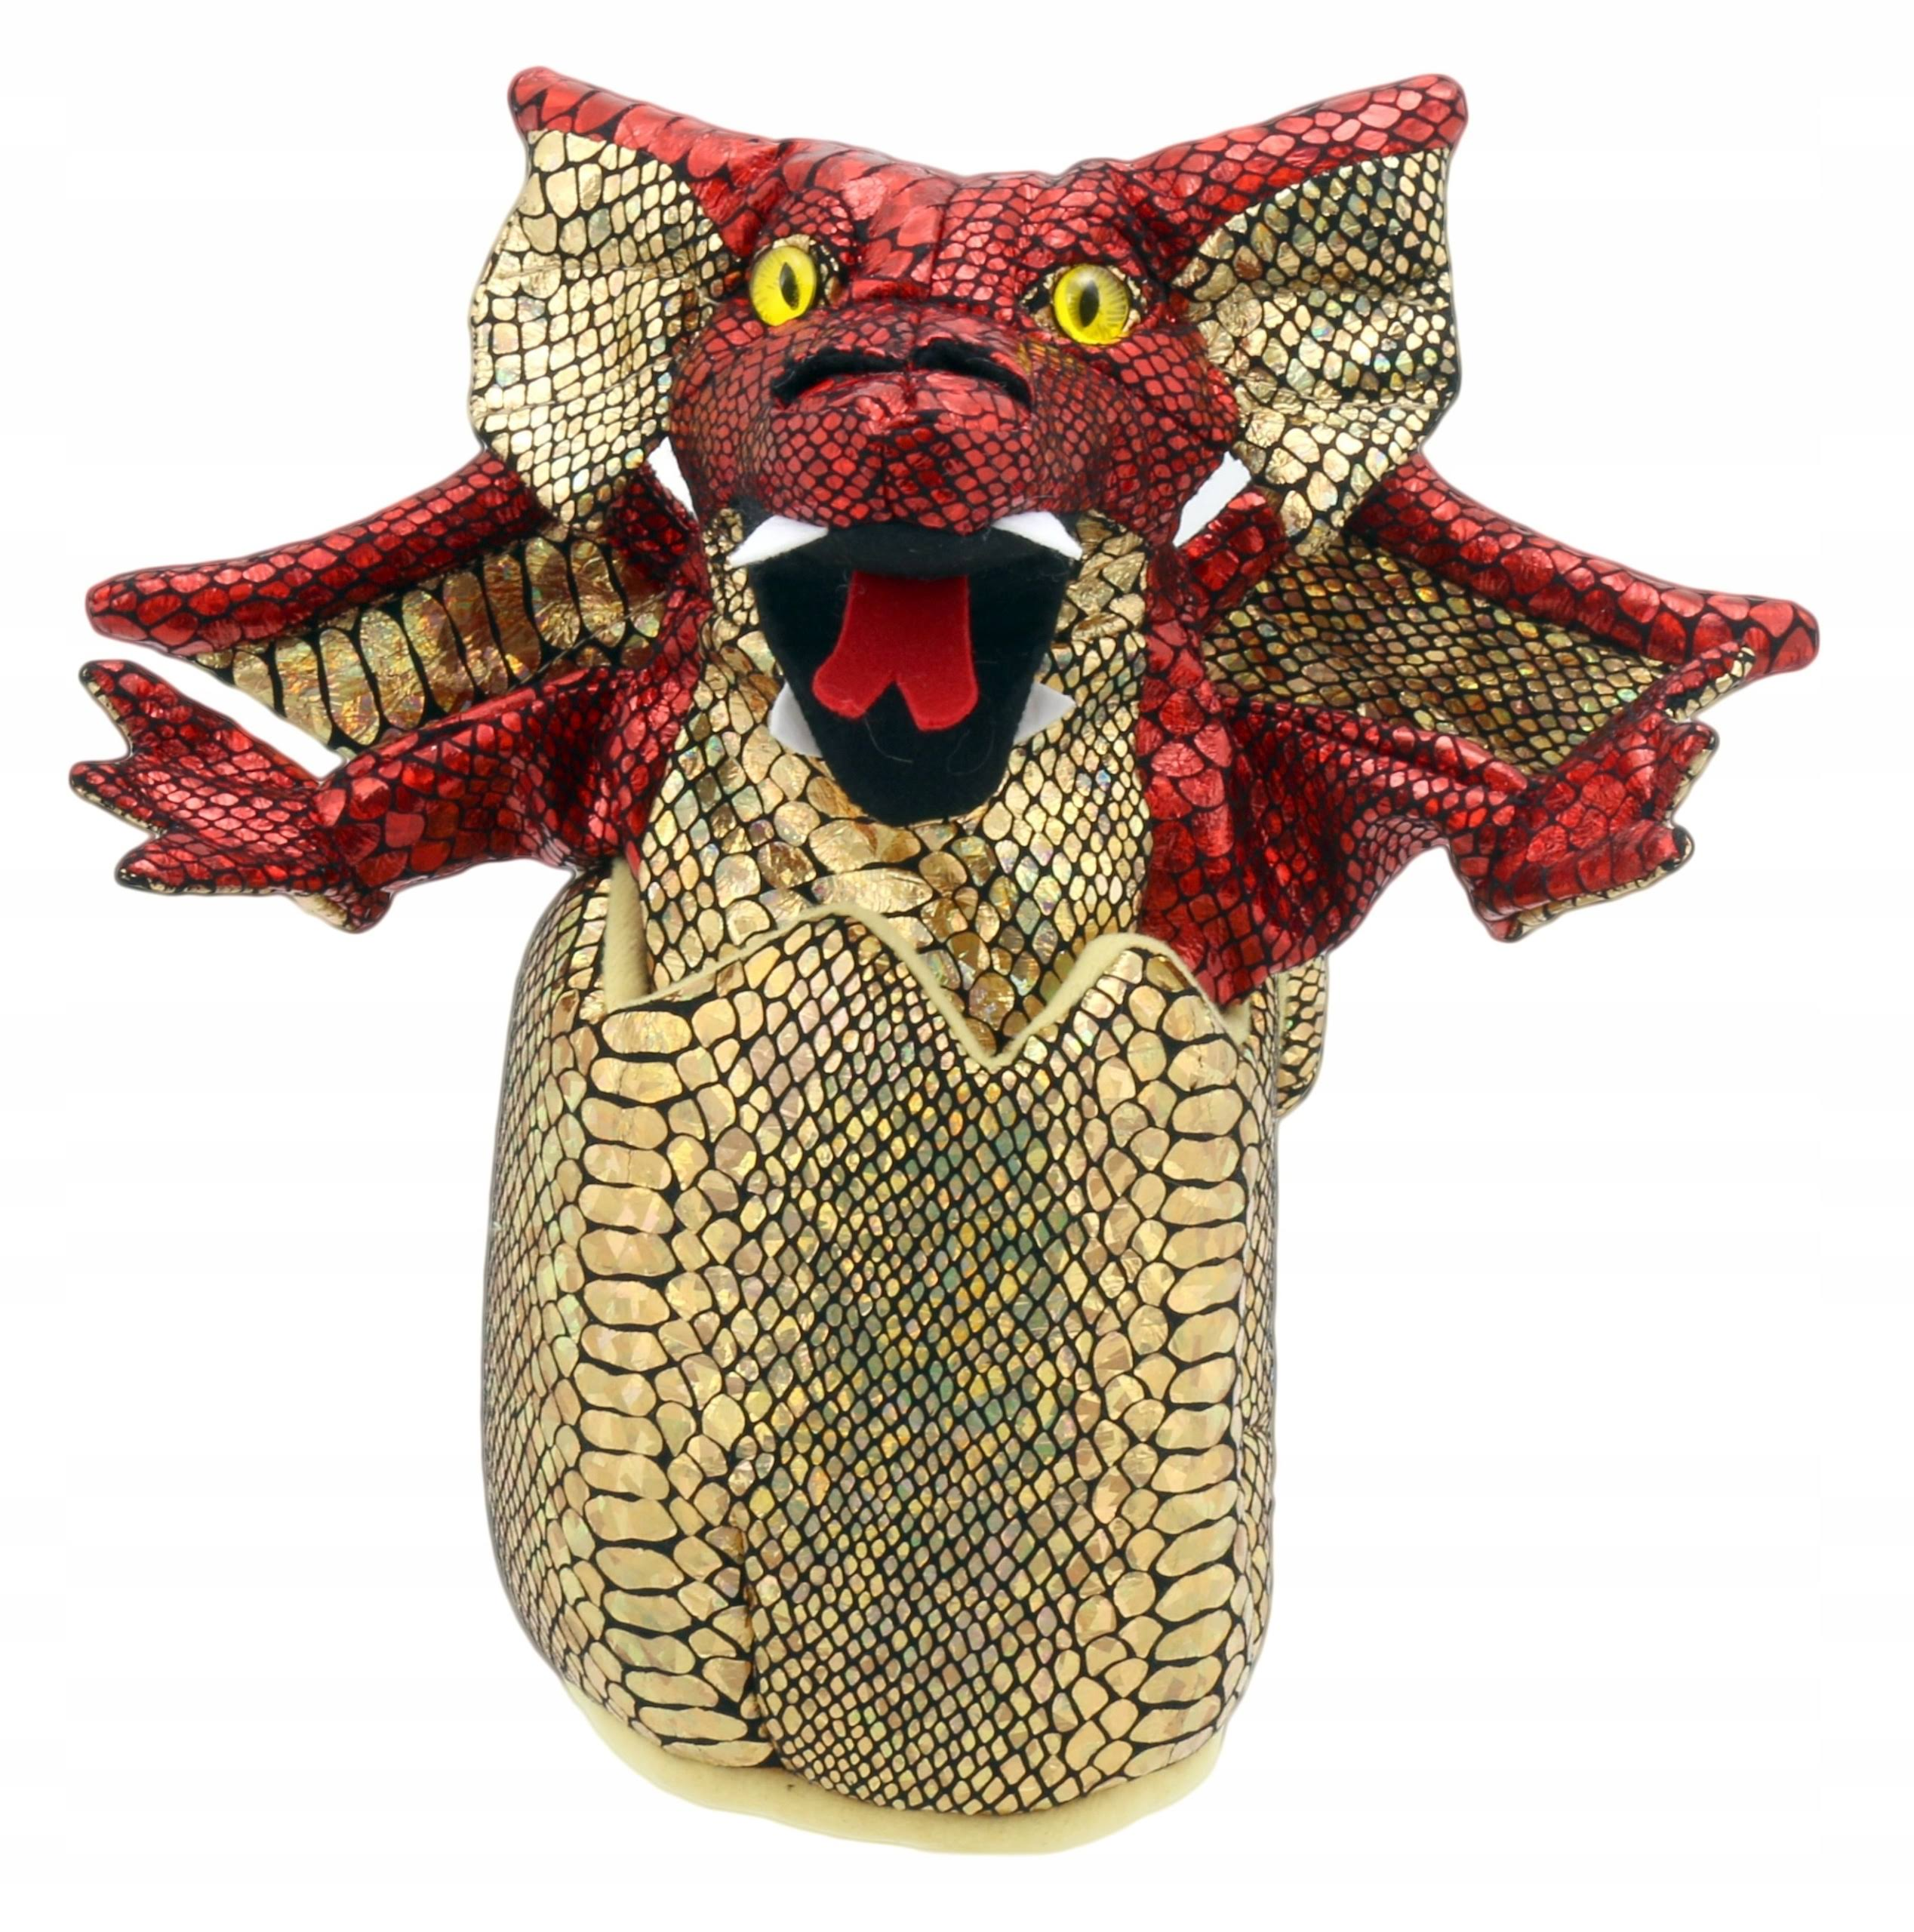 Puppet Company Baby Birds Puppet - Baby Dragon, Red